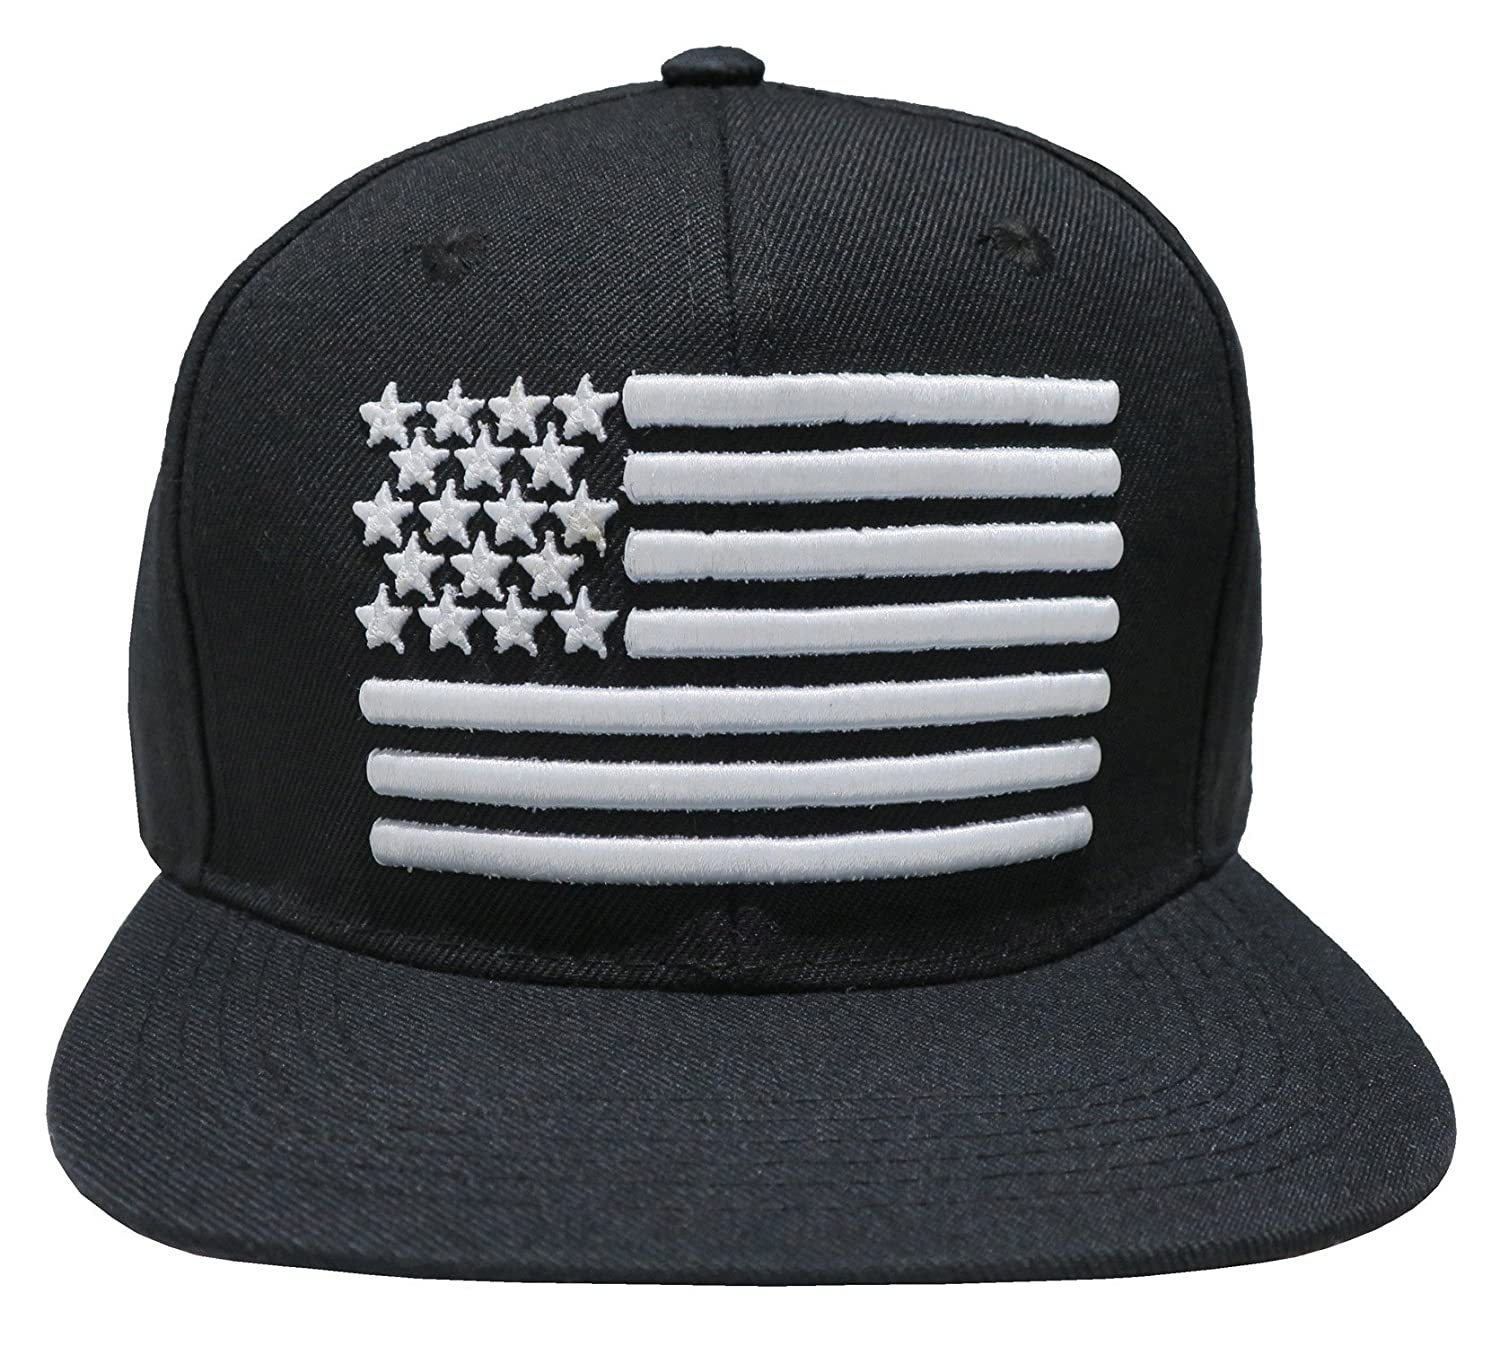 c19057386b5 Great Cities American Flag Embroidered Flat Bill Snapback Cap Hat (Black)  at Amazon Men s Clothing store